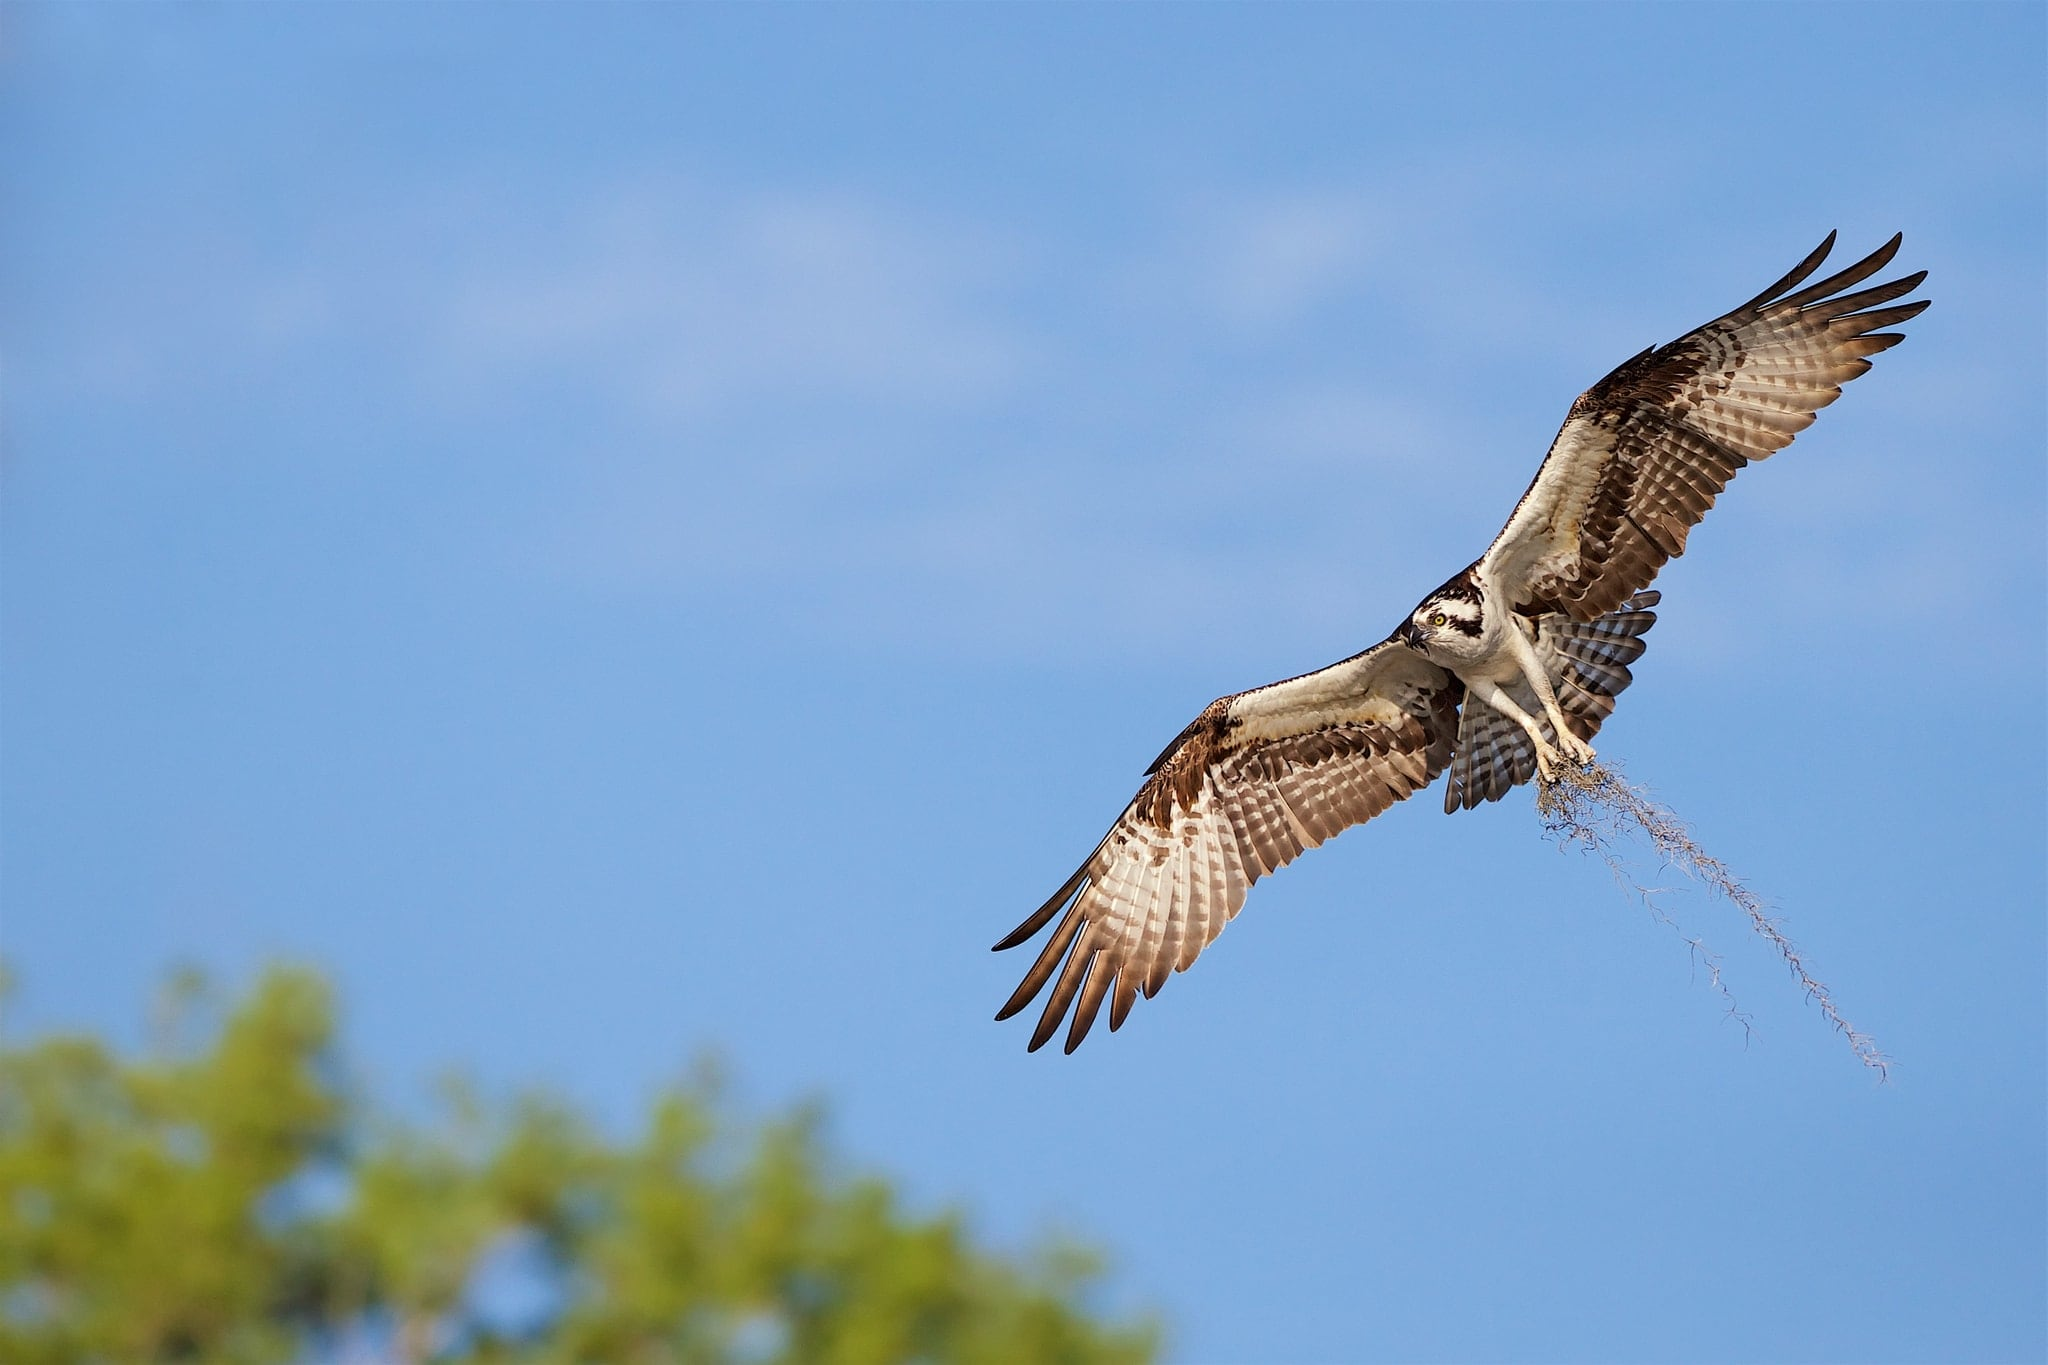 One Of The Ospreys Of Blue Cypress Lake Returns With Nesting Material   Image Captured During The Ospreys Of Blue Cypress Lake Photography Holiday